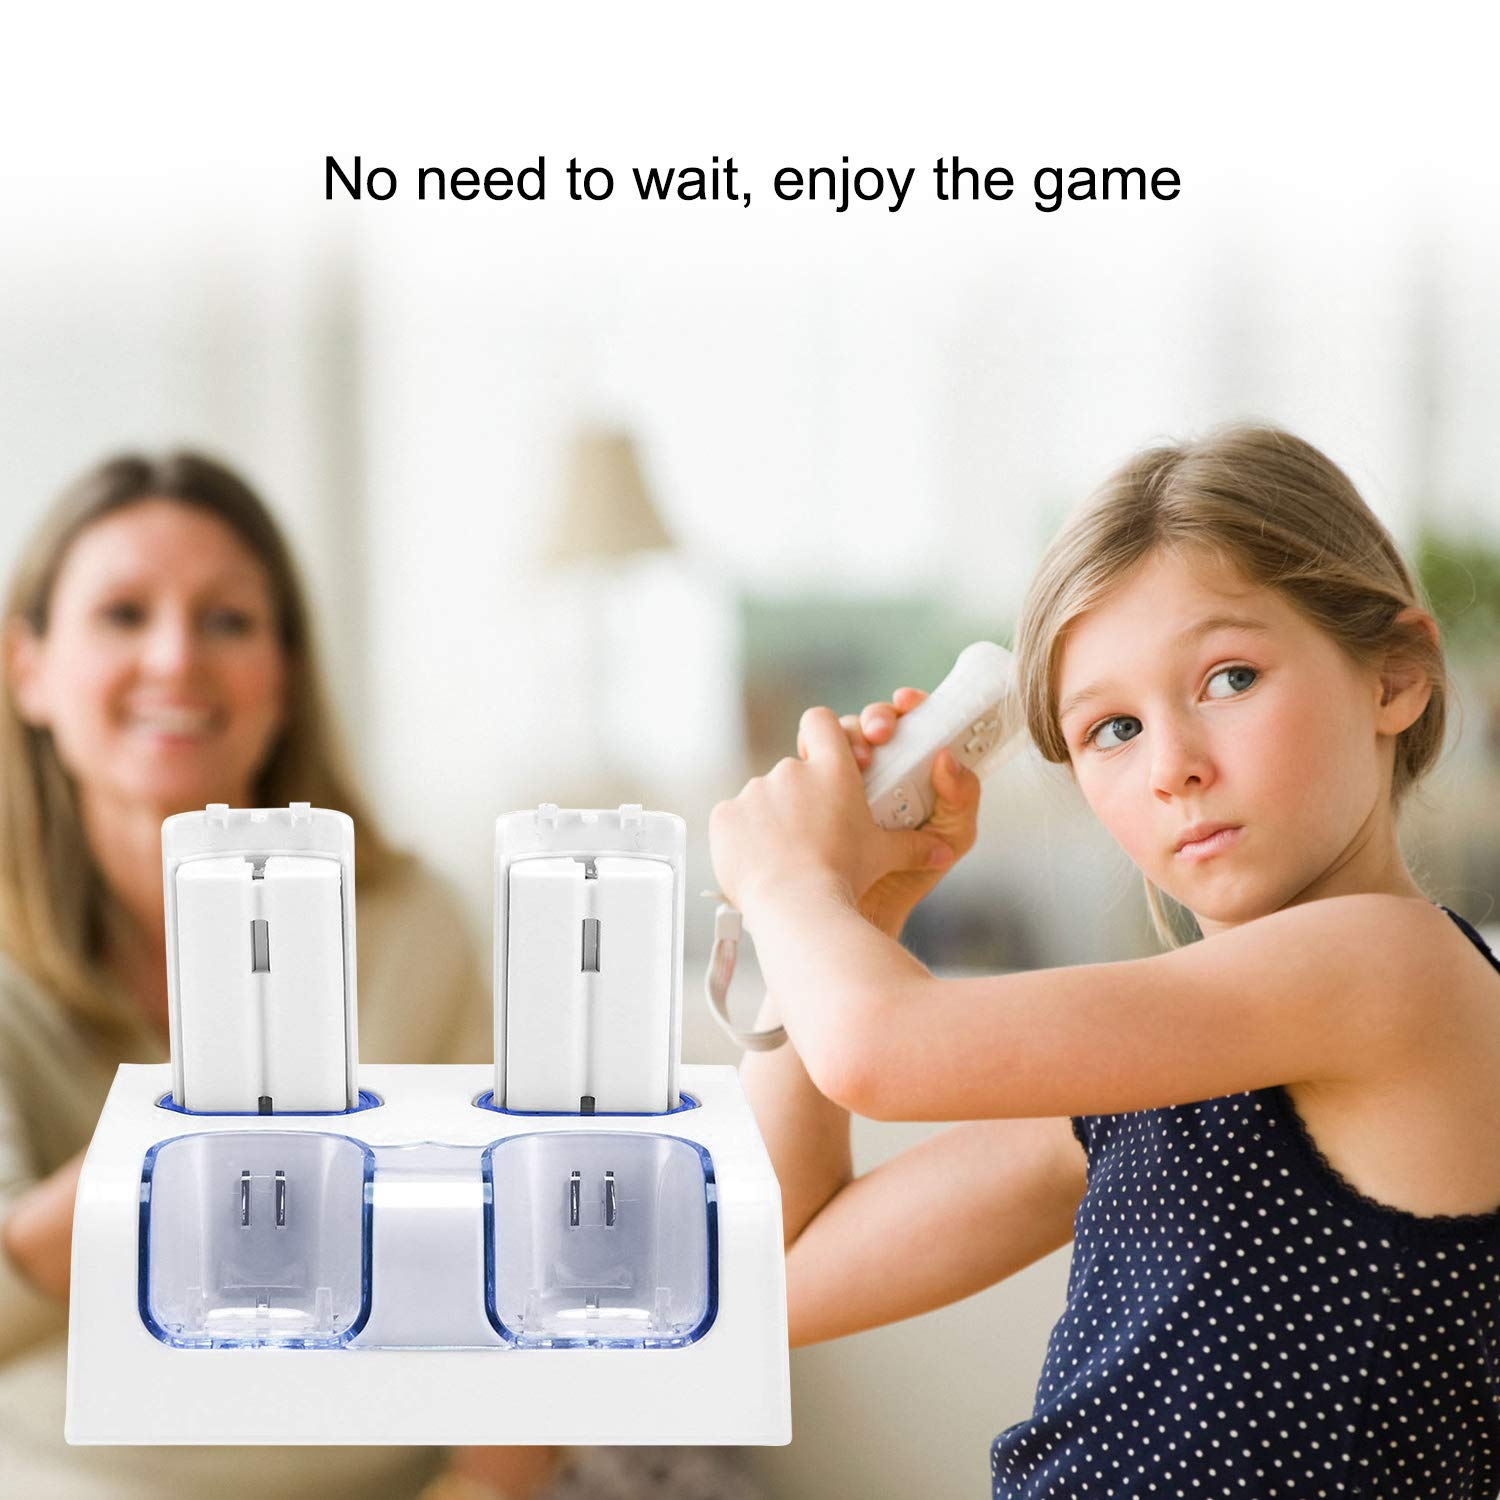 Wii Controller TechKen Set of 2 Wii Remote with Nunchuck